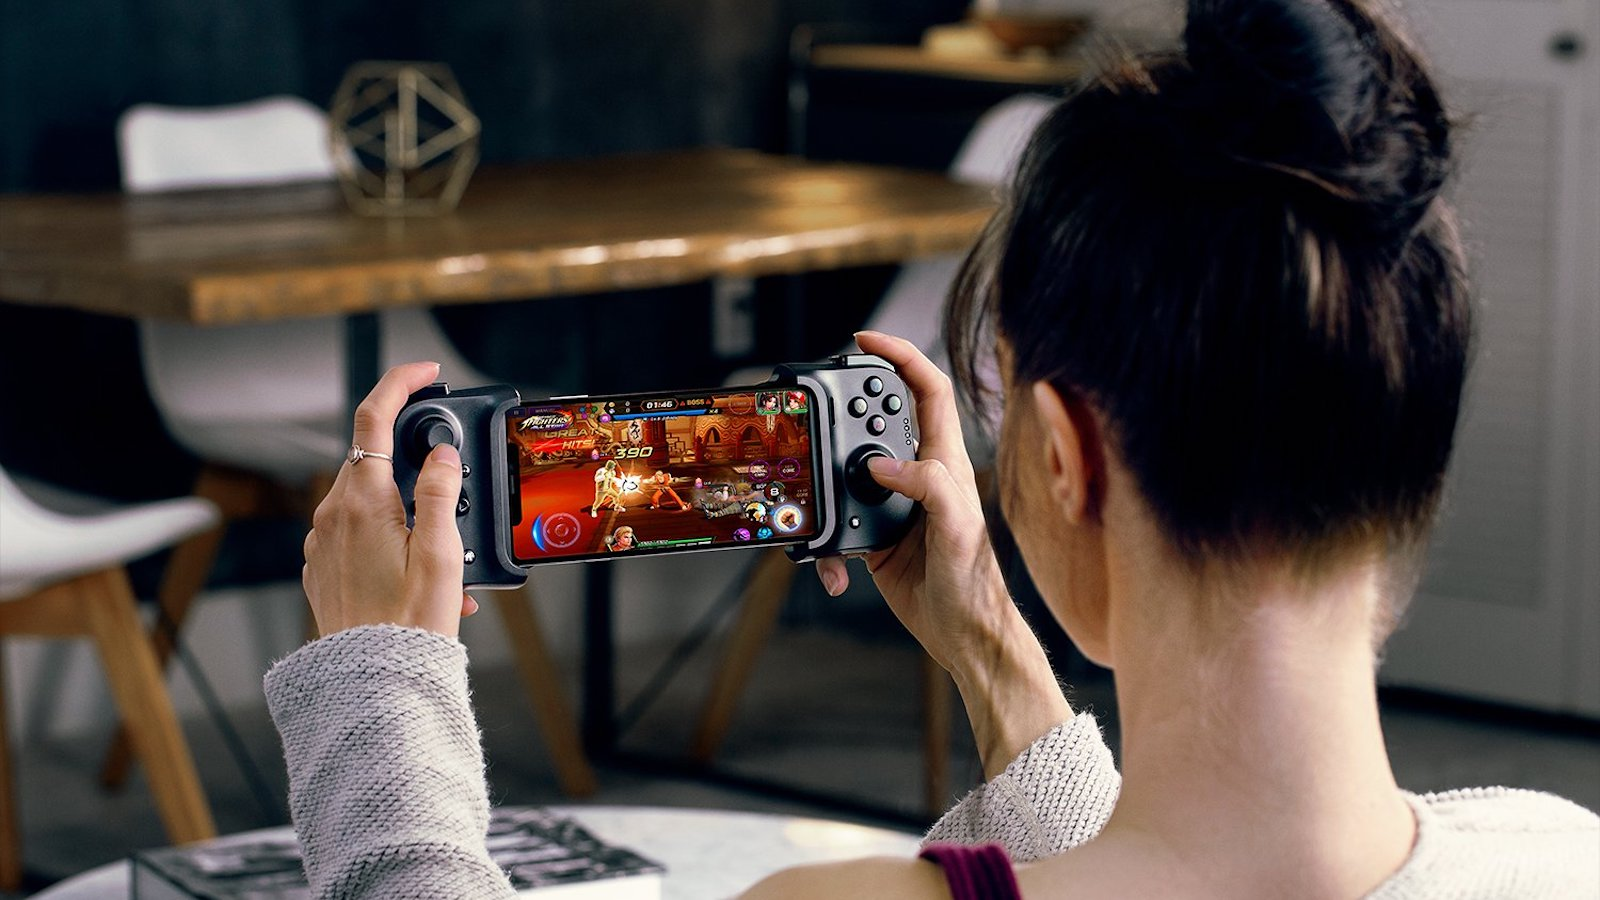 10 Must-have iOS gaming devices